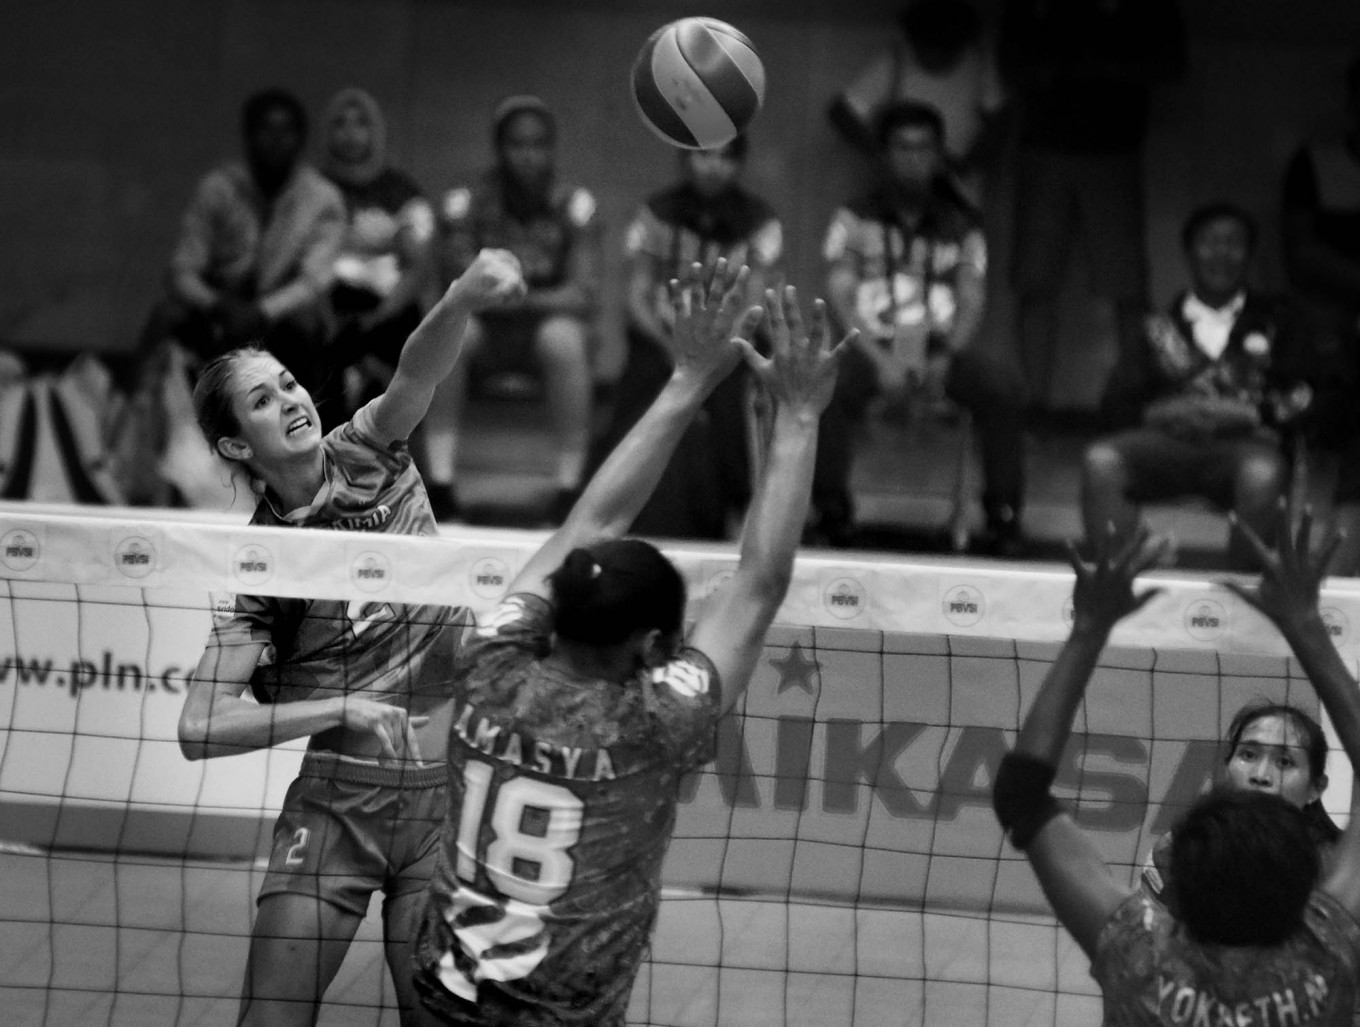 Petro Kimia Gresik player Halley Dora Spelman smashes the ball while Jakarta PGN Popsivo Polwan players try to block it during a match on Jan. 28. Popsivo won 25-12, 17-25, 25-13,25-13,10-25 (3-2). JP/Aman Rochman